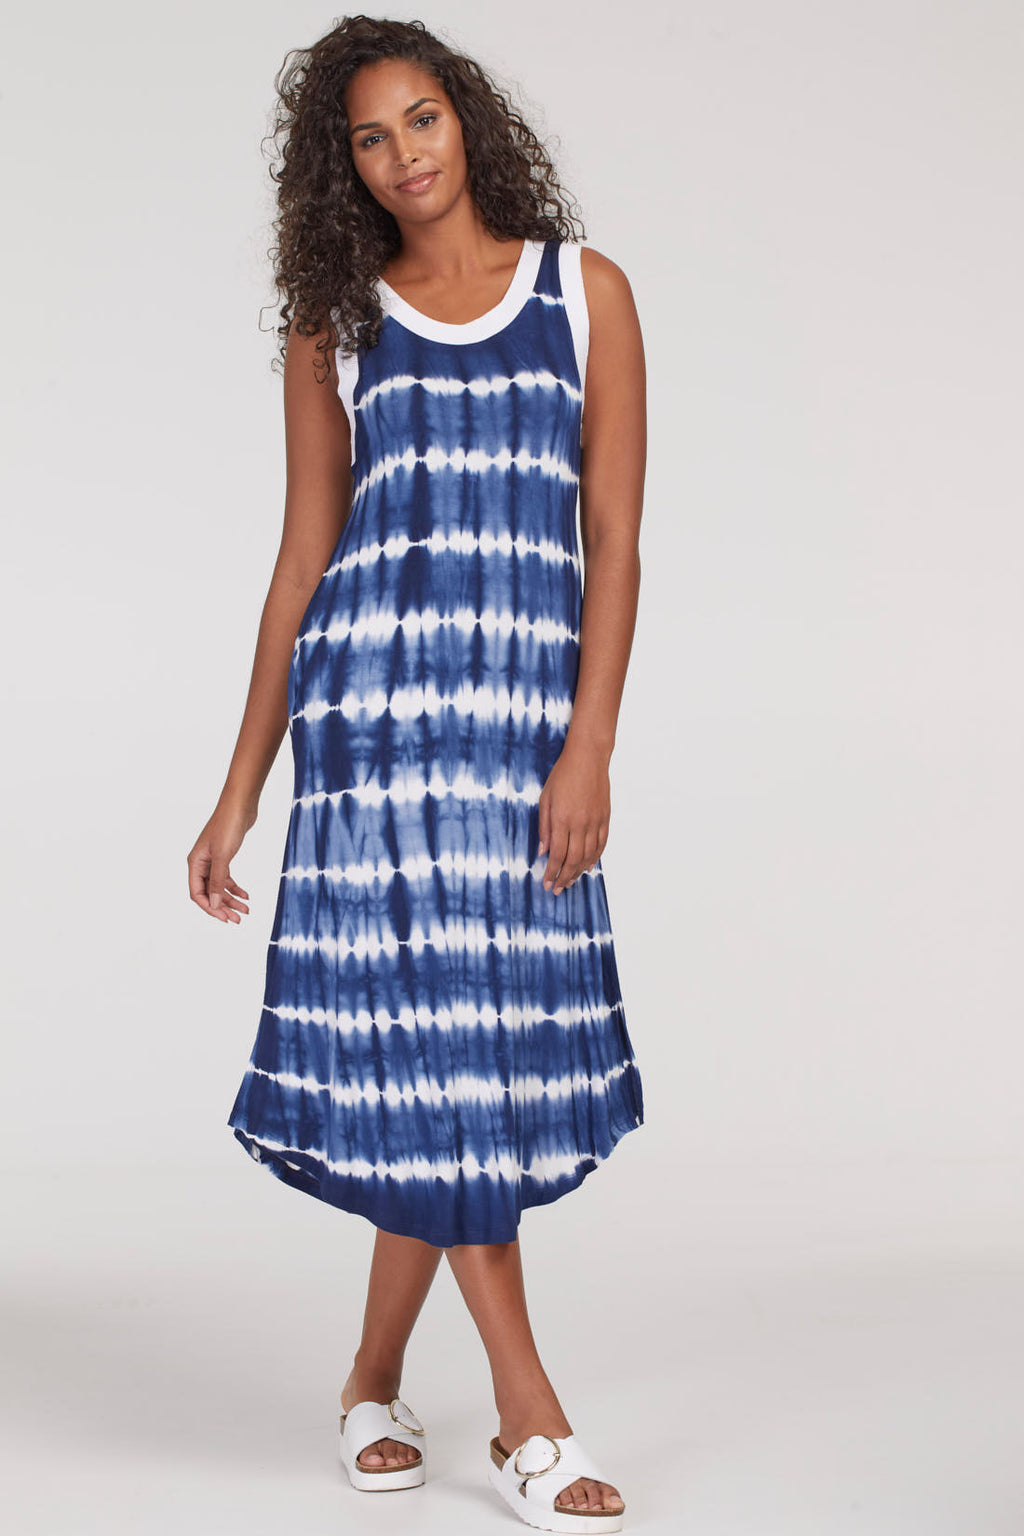 Sleeveless Tie Dye Jersey Dress - dolly mama boutique